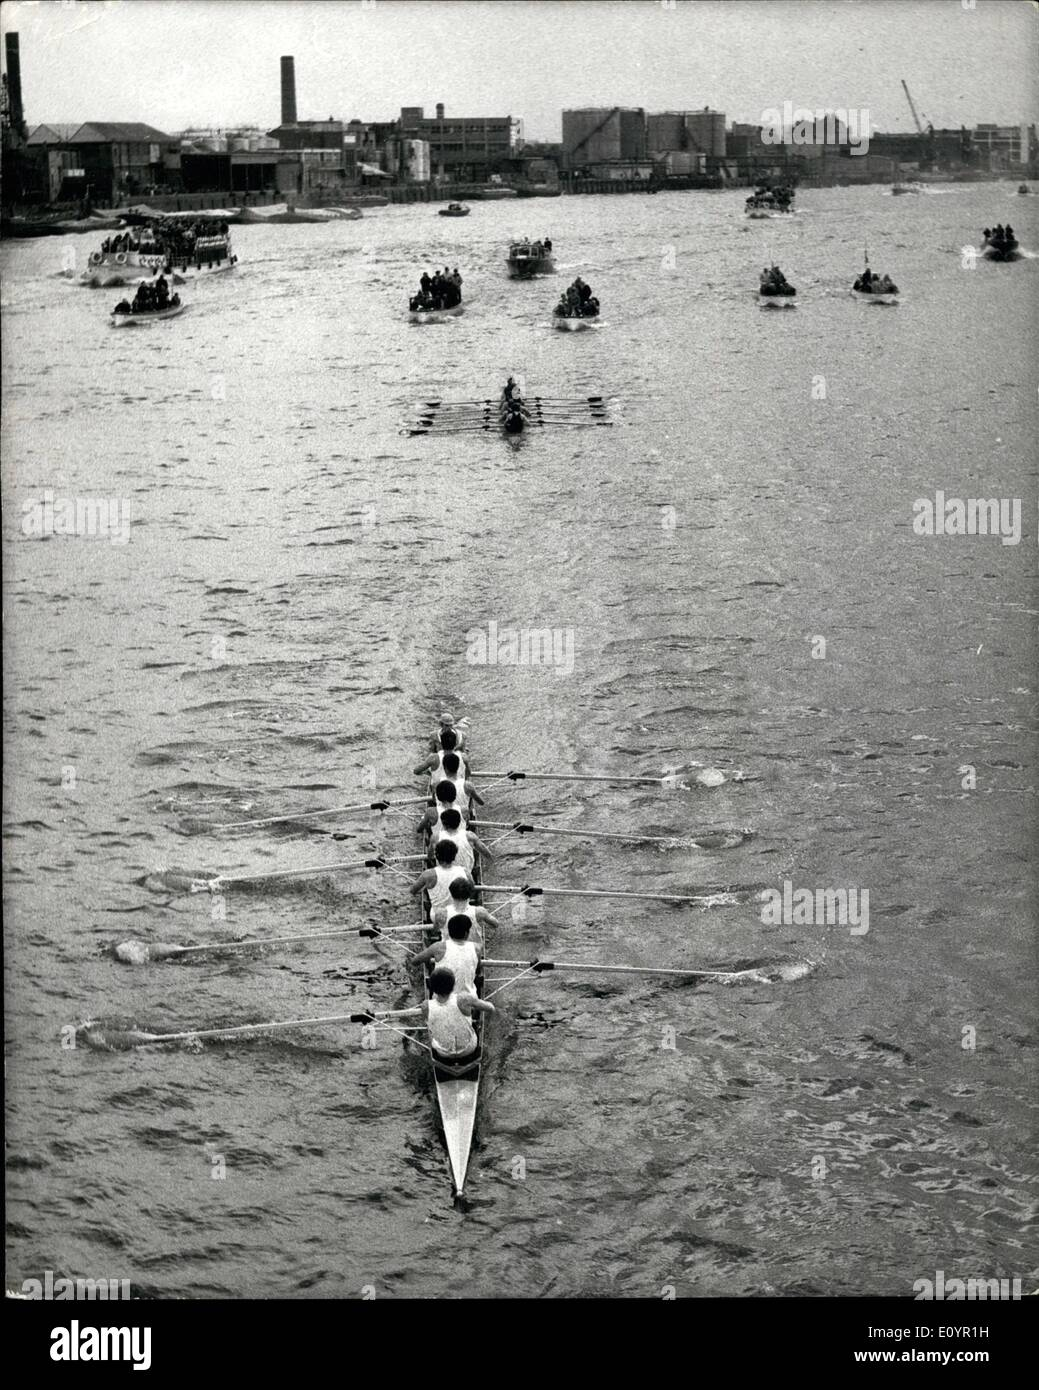 Mar. 03, 1971 - Cambridge Beat Oxford by ten lengths in the 117th Boat Race from Putney to Mortlake: Cambridge easily beat Oxford by ten lengths in the annual University Boat Race over a 4 1/2 - mile course from Putney to Mortlake. Photo Shows: A picture taken from Hammersmith Bridge showing the Cambridge crew leading Oxford by about three lengths during today's boat race. - Stock Image